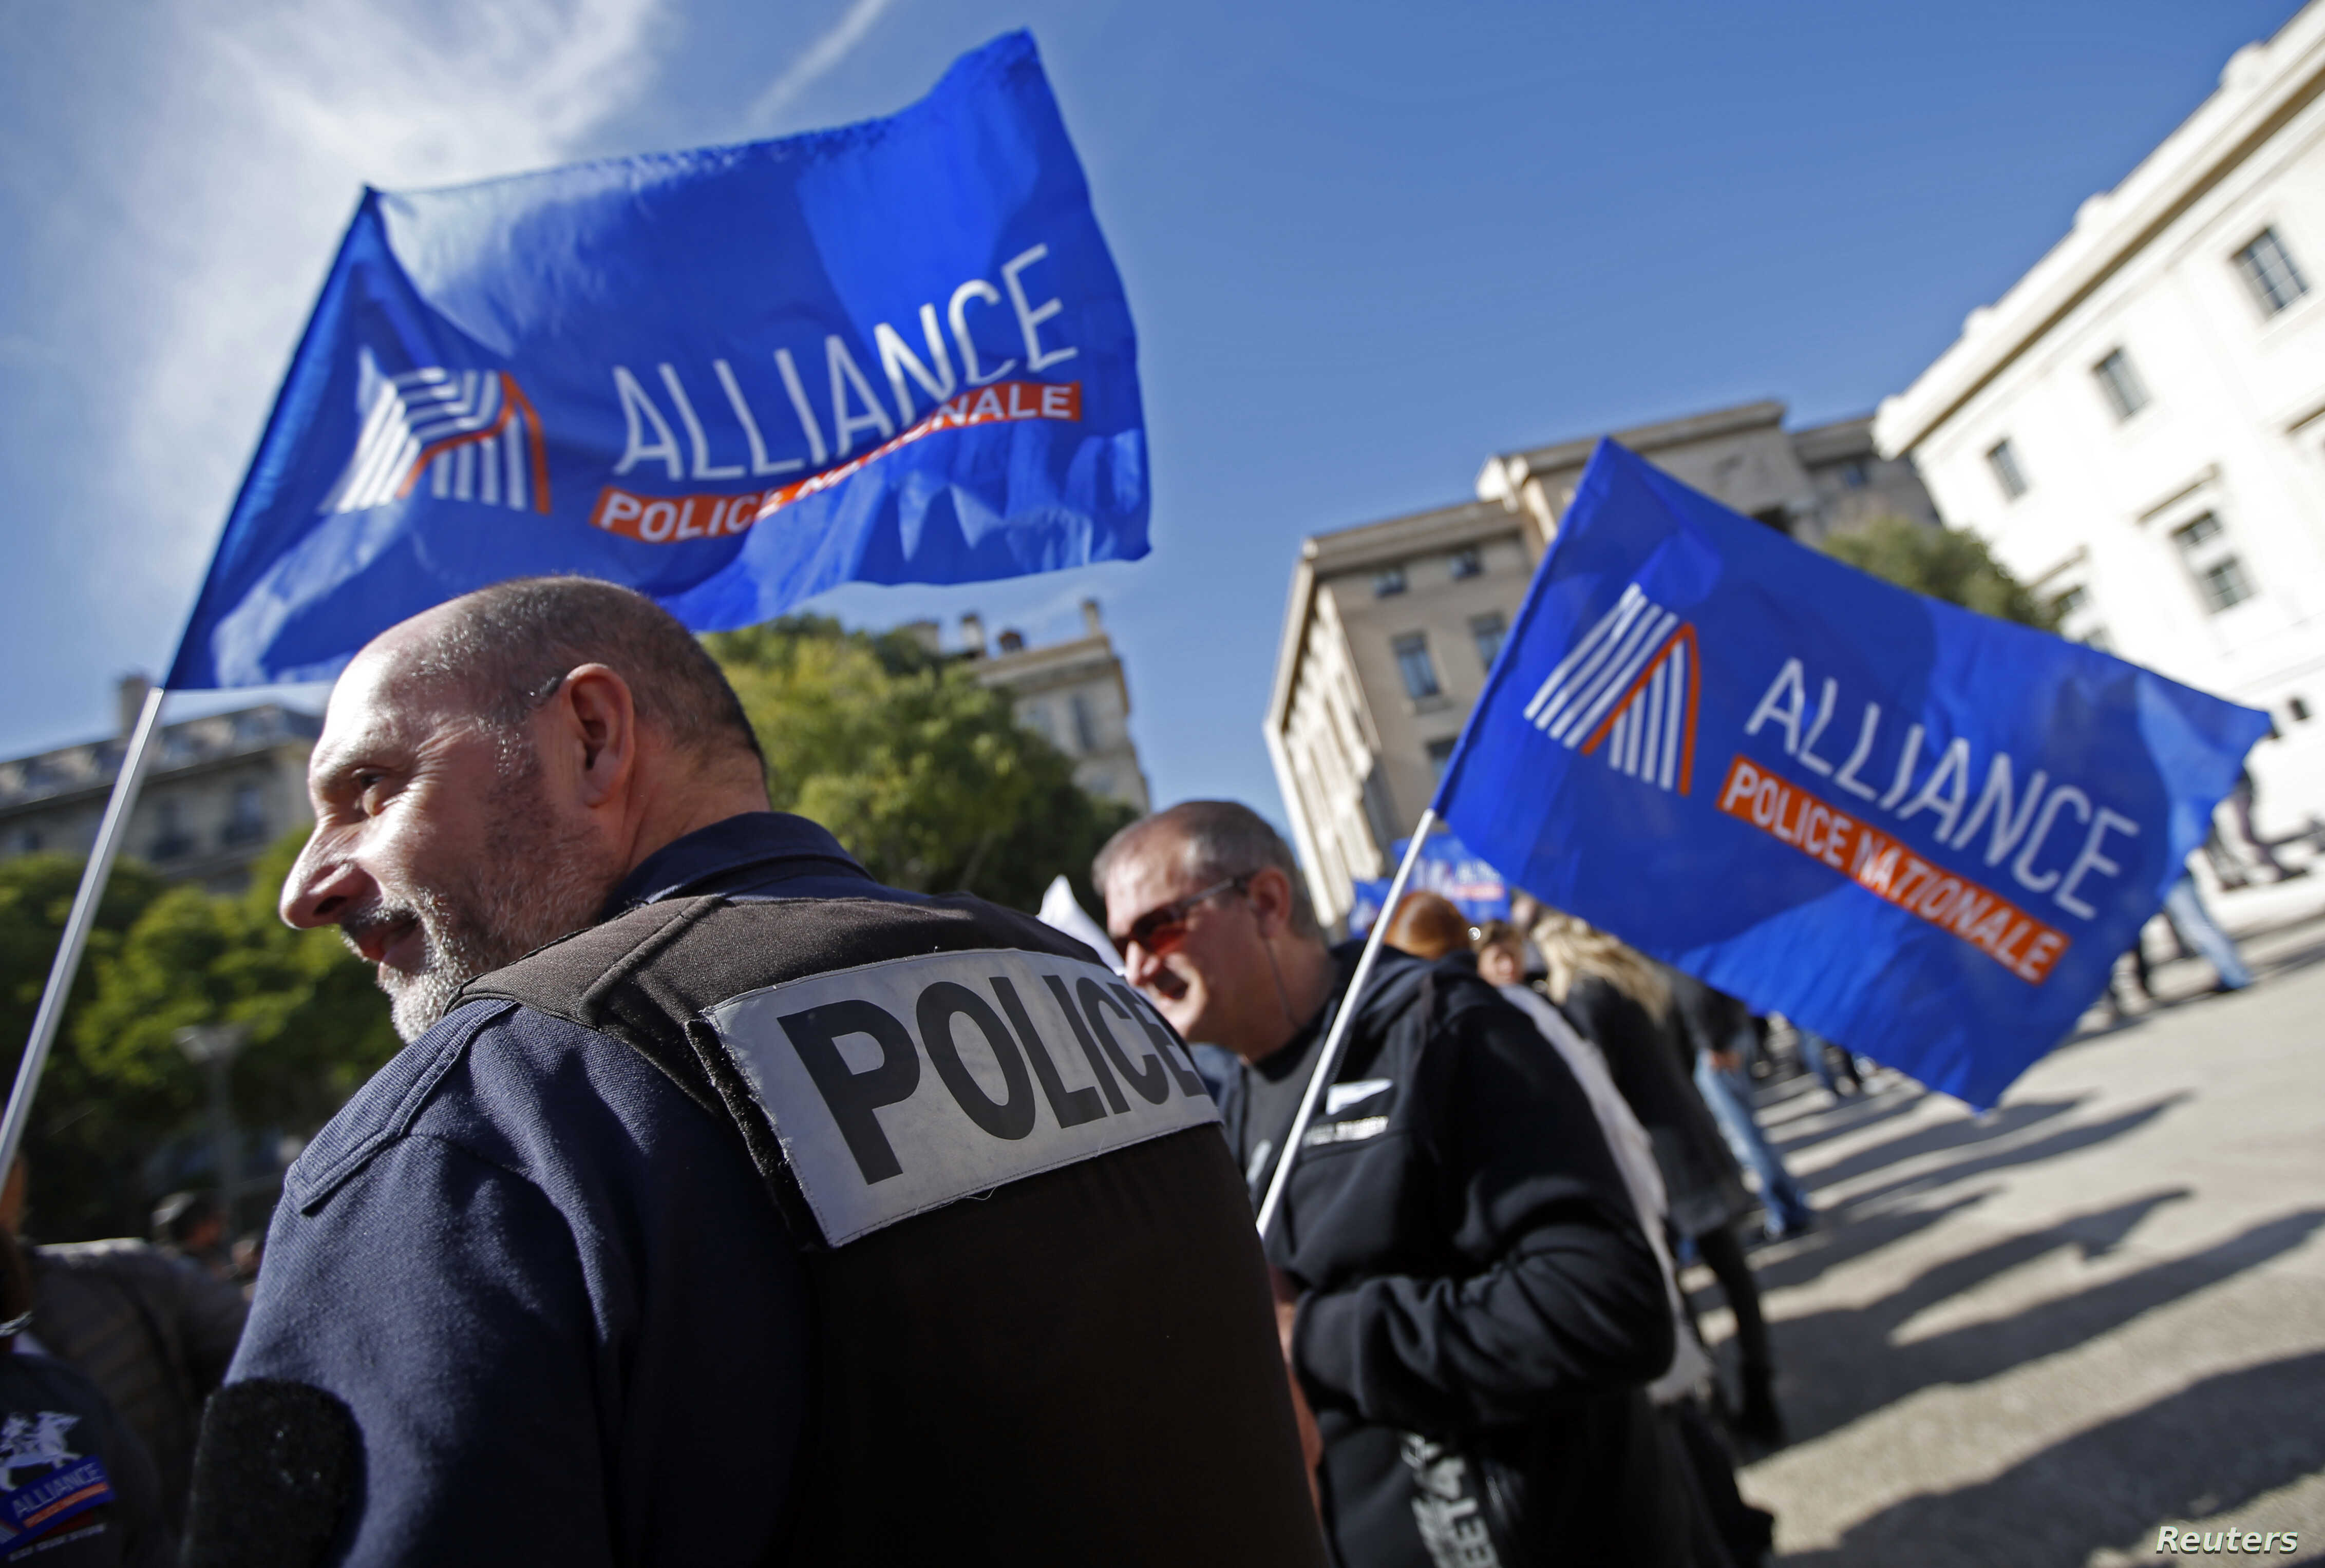 French police, holding labor union banners, rally at the courthouse in Marseille as part of a national protest against what they contend is inadequate judicial support, Oct. 14, 2015.